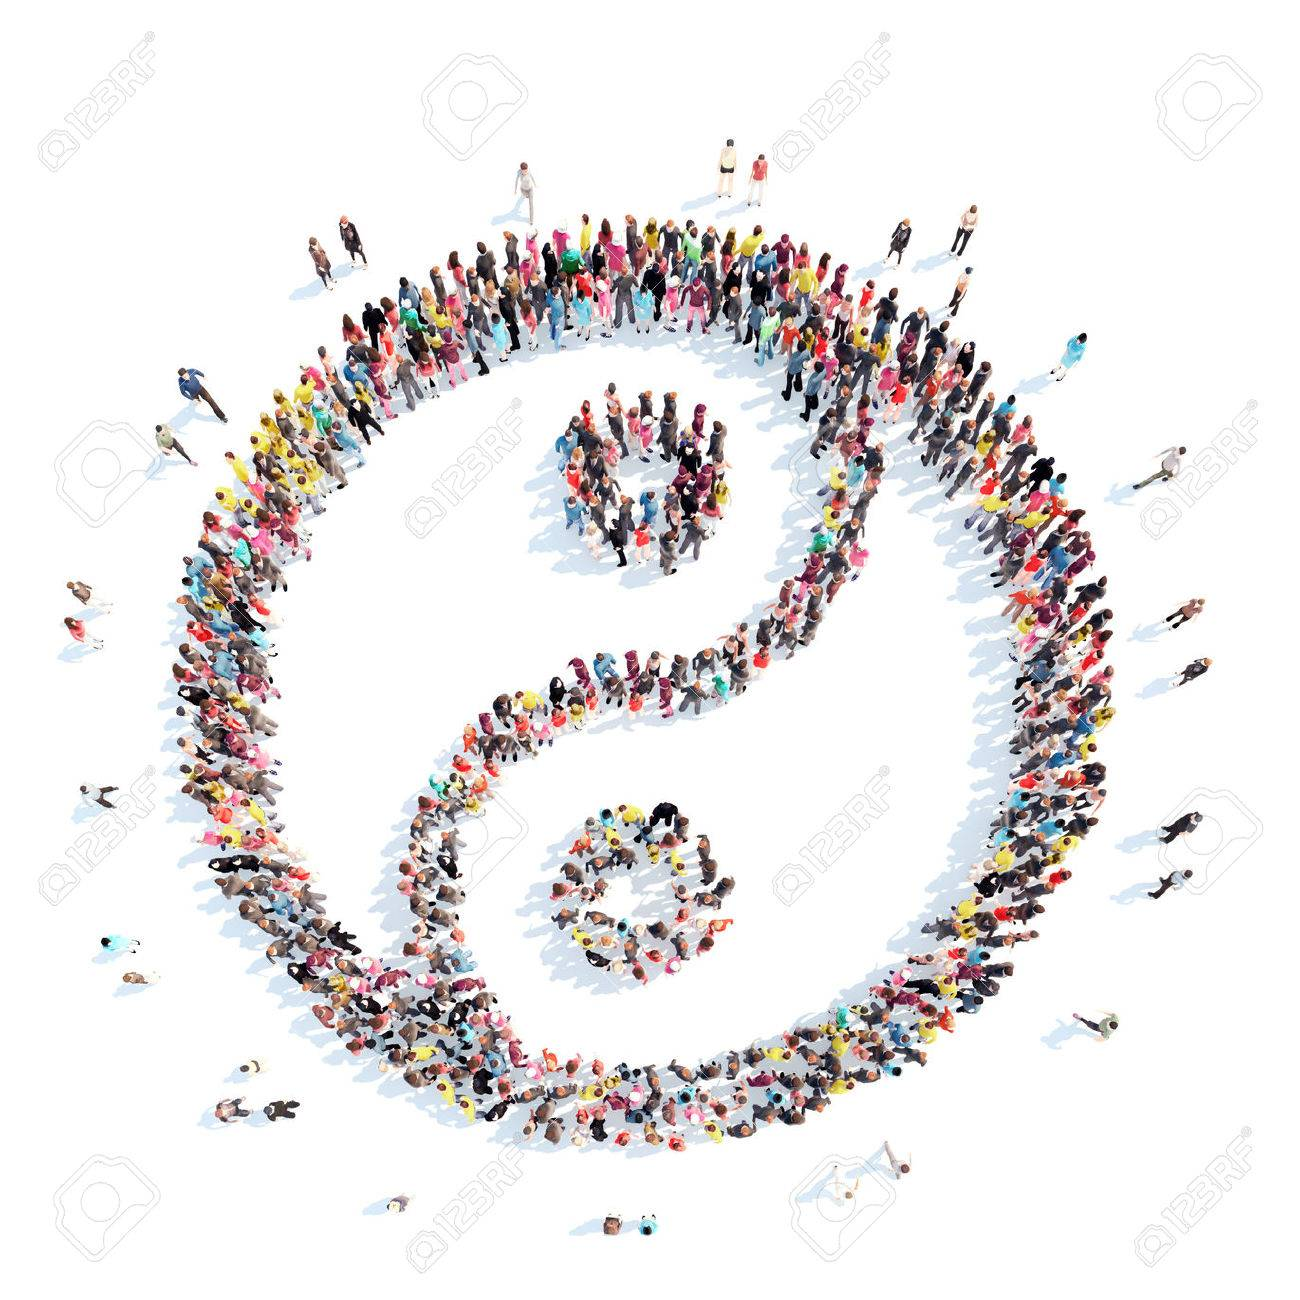 A large group of people in the shape of yin yang. Isolated, white background. - 41237681